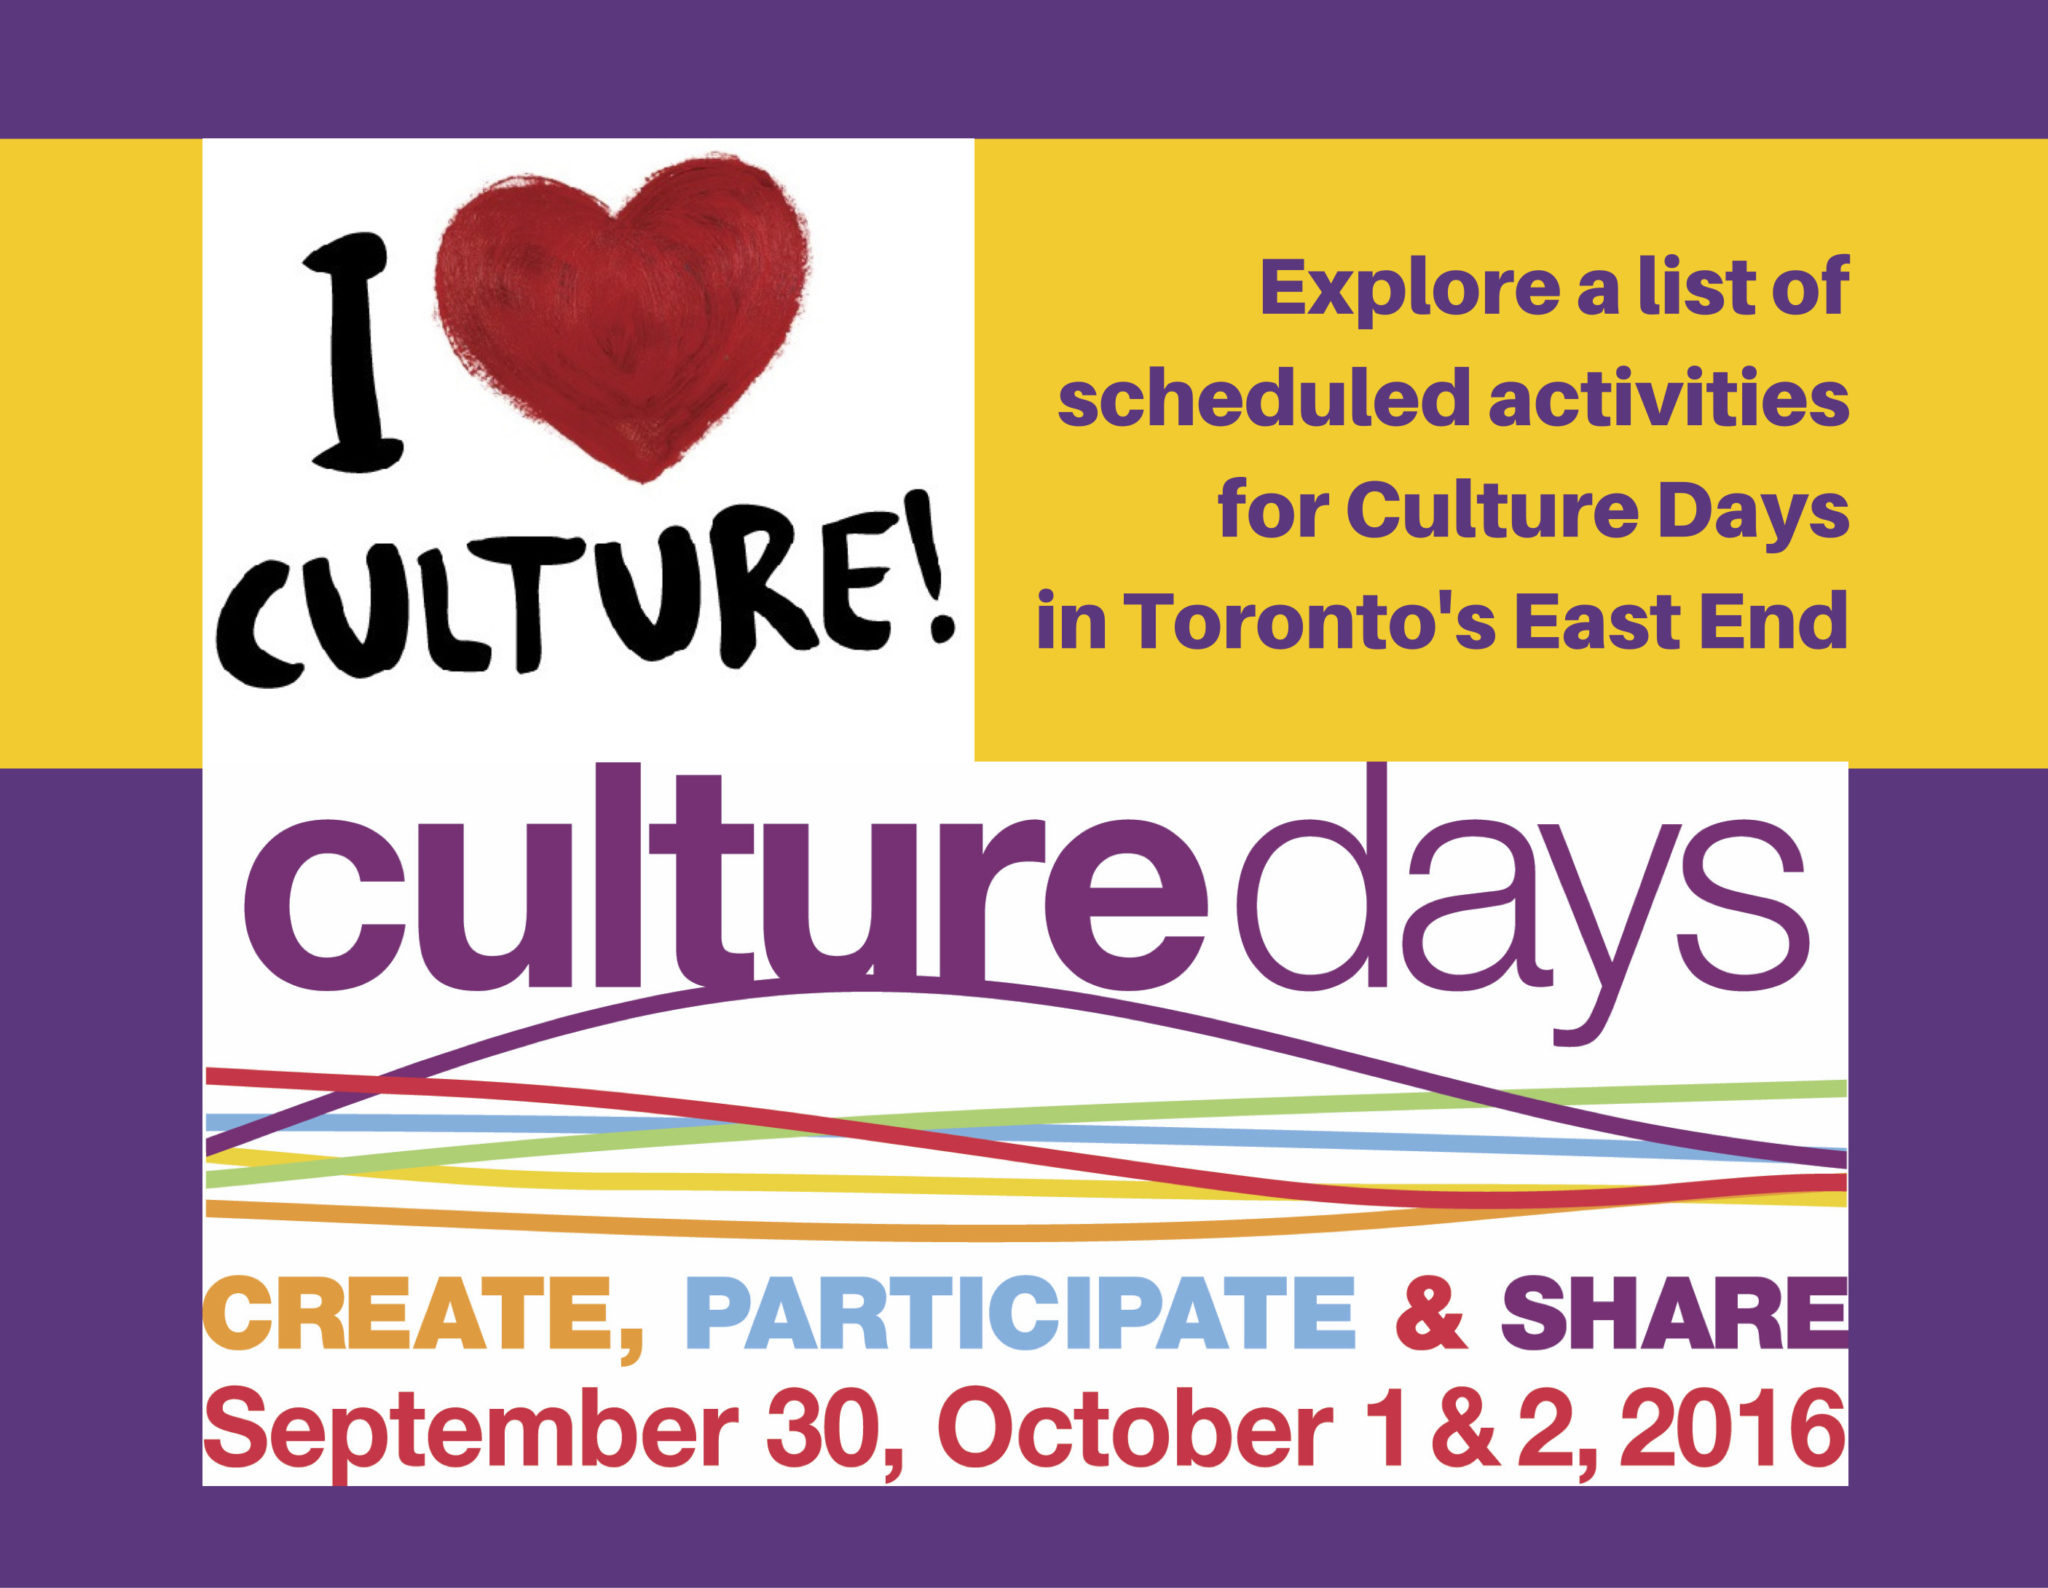 culture-days-2016-east-end-list_feature